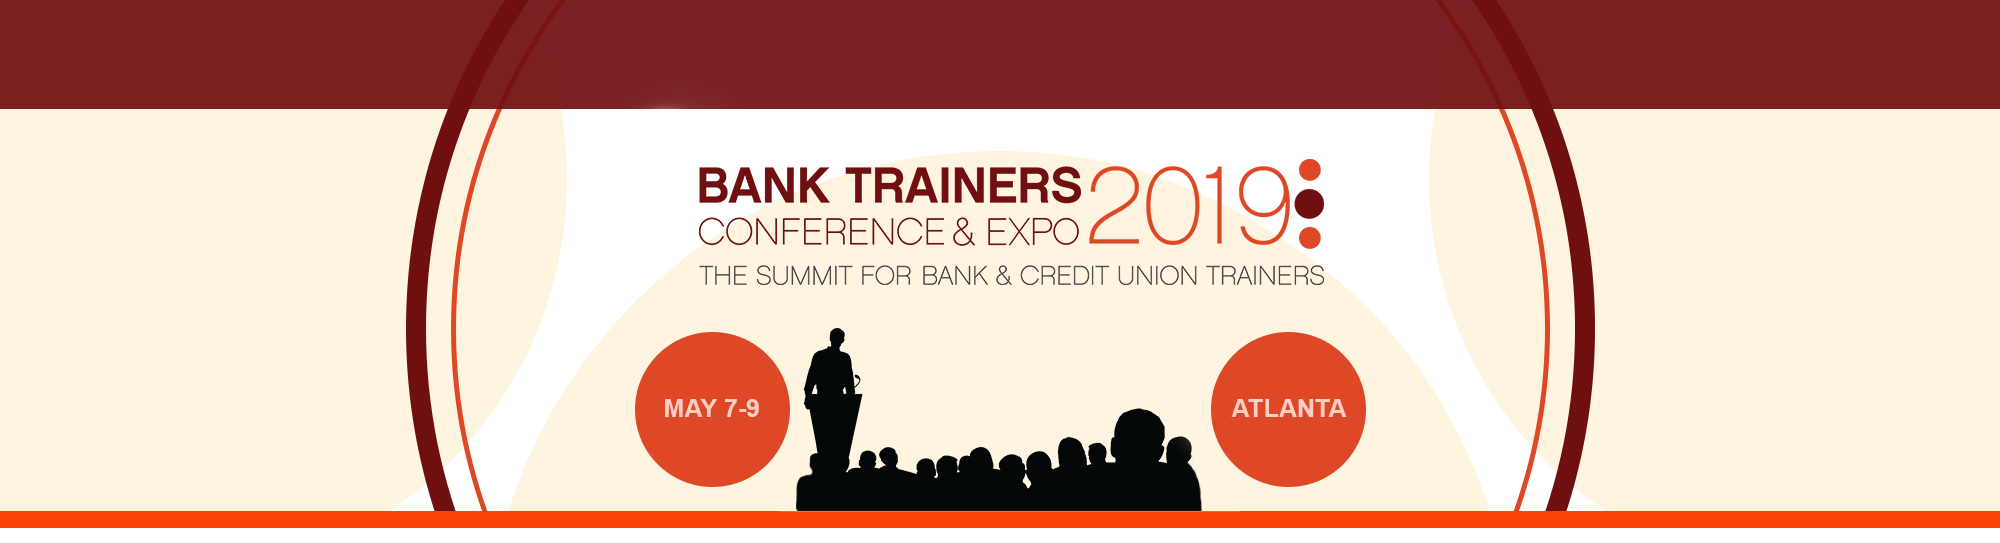 Bank Trainers Conference